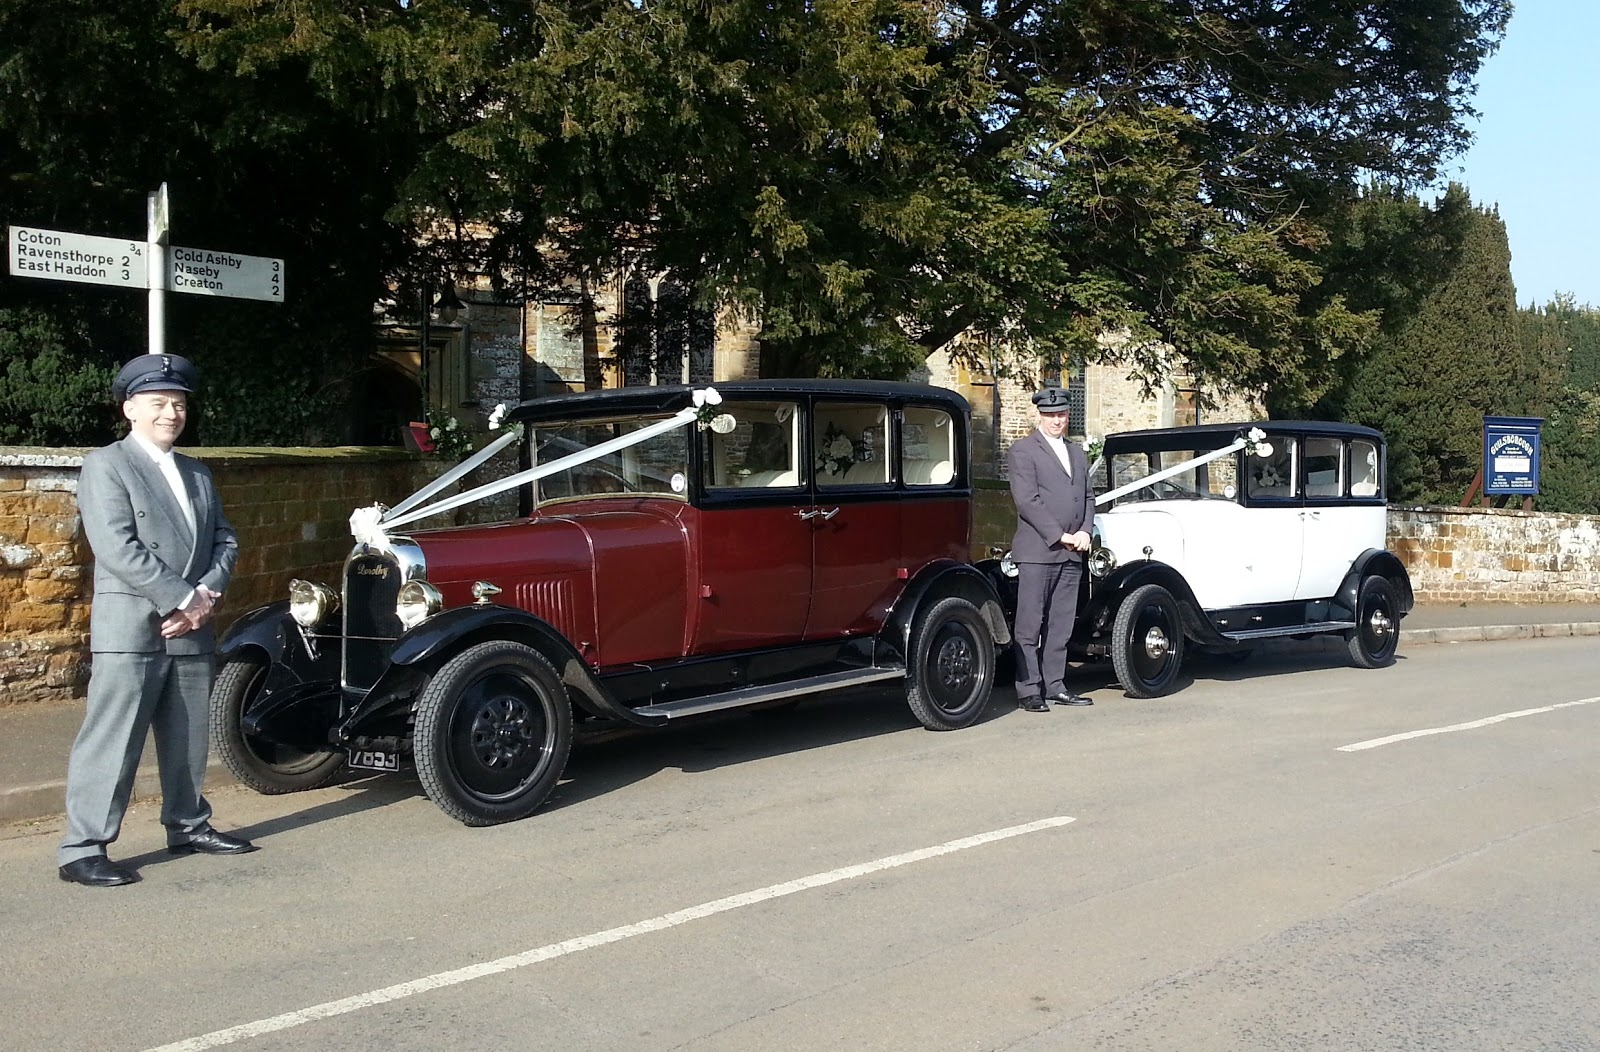 And I Could Not Resist Taking This Photograph Of 2 Our Cars Dorothy Harriet Plus Chauffeurs Rob Ian Outside The Church